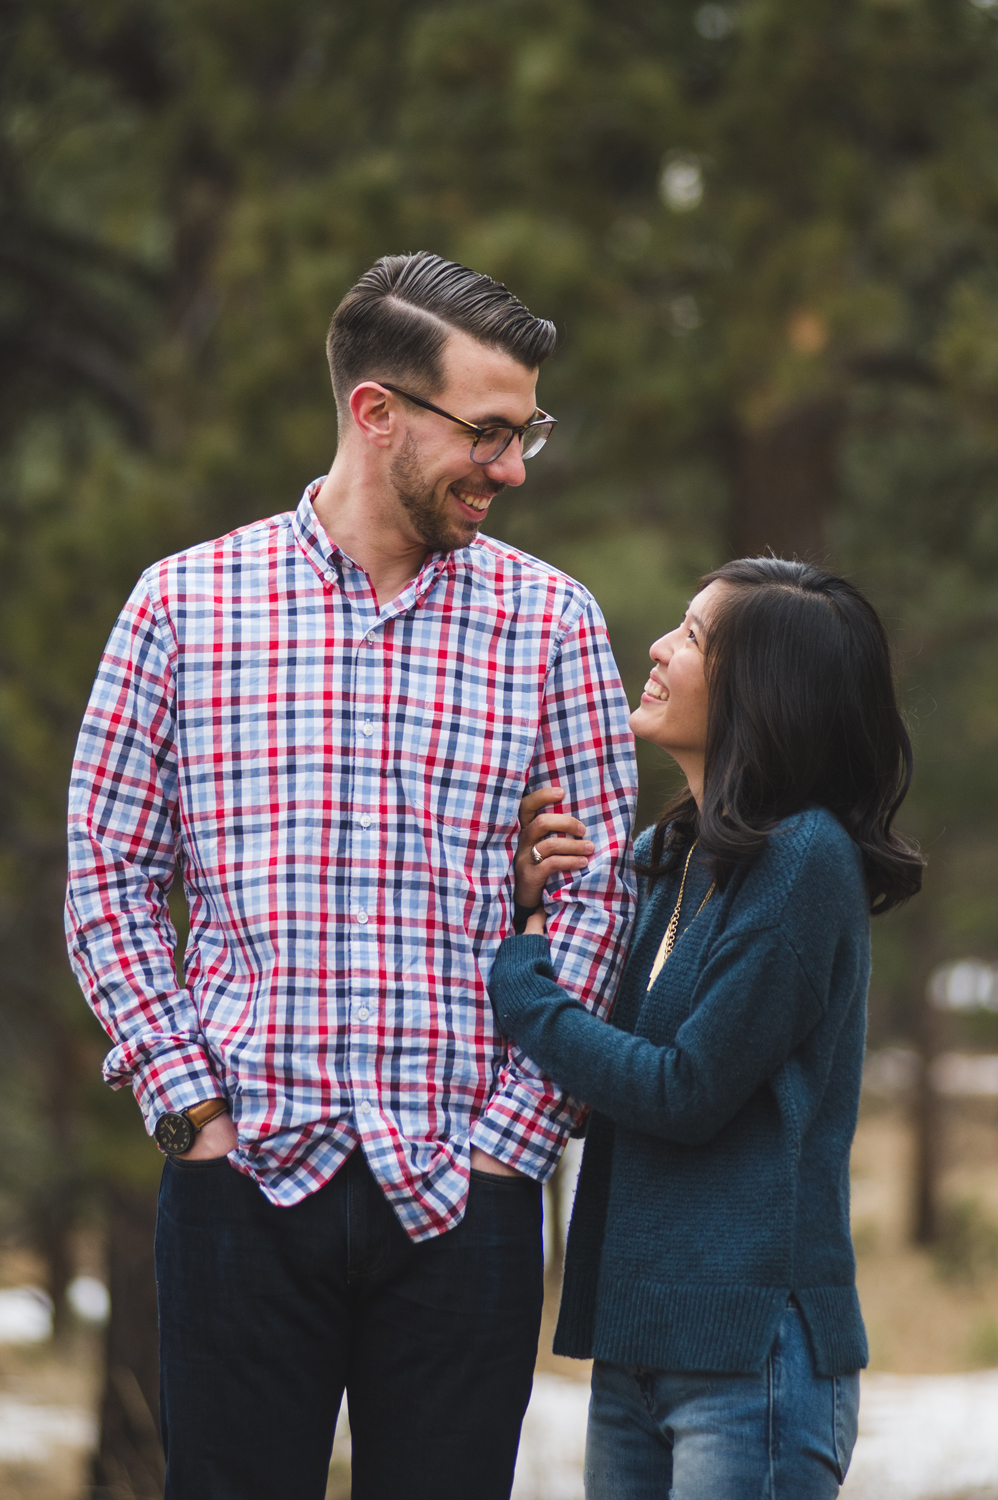 TiffanyandMark_Engaged_0297_squarespace.jpg